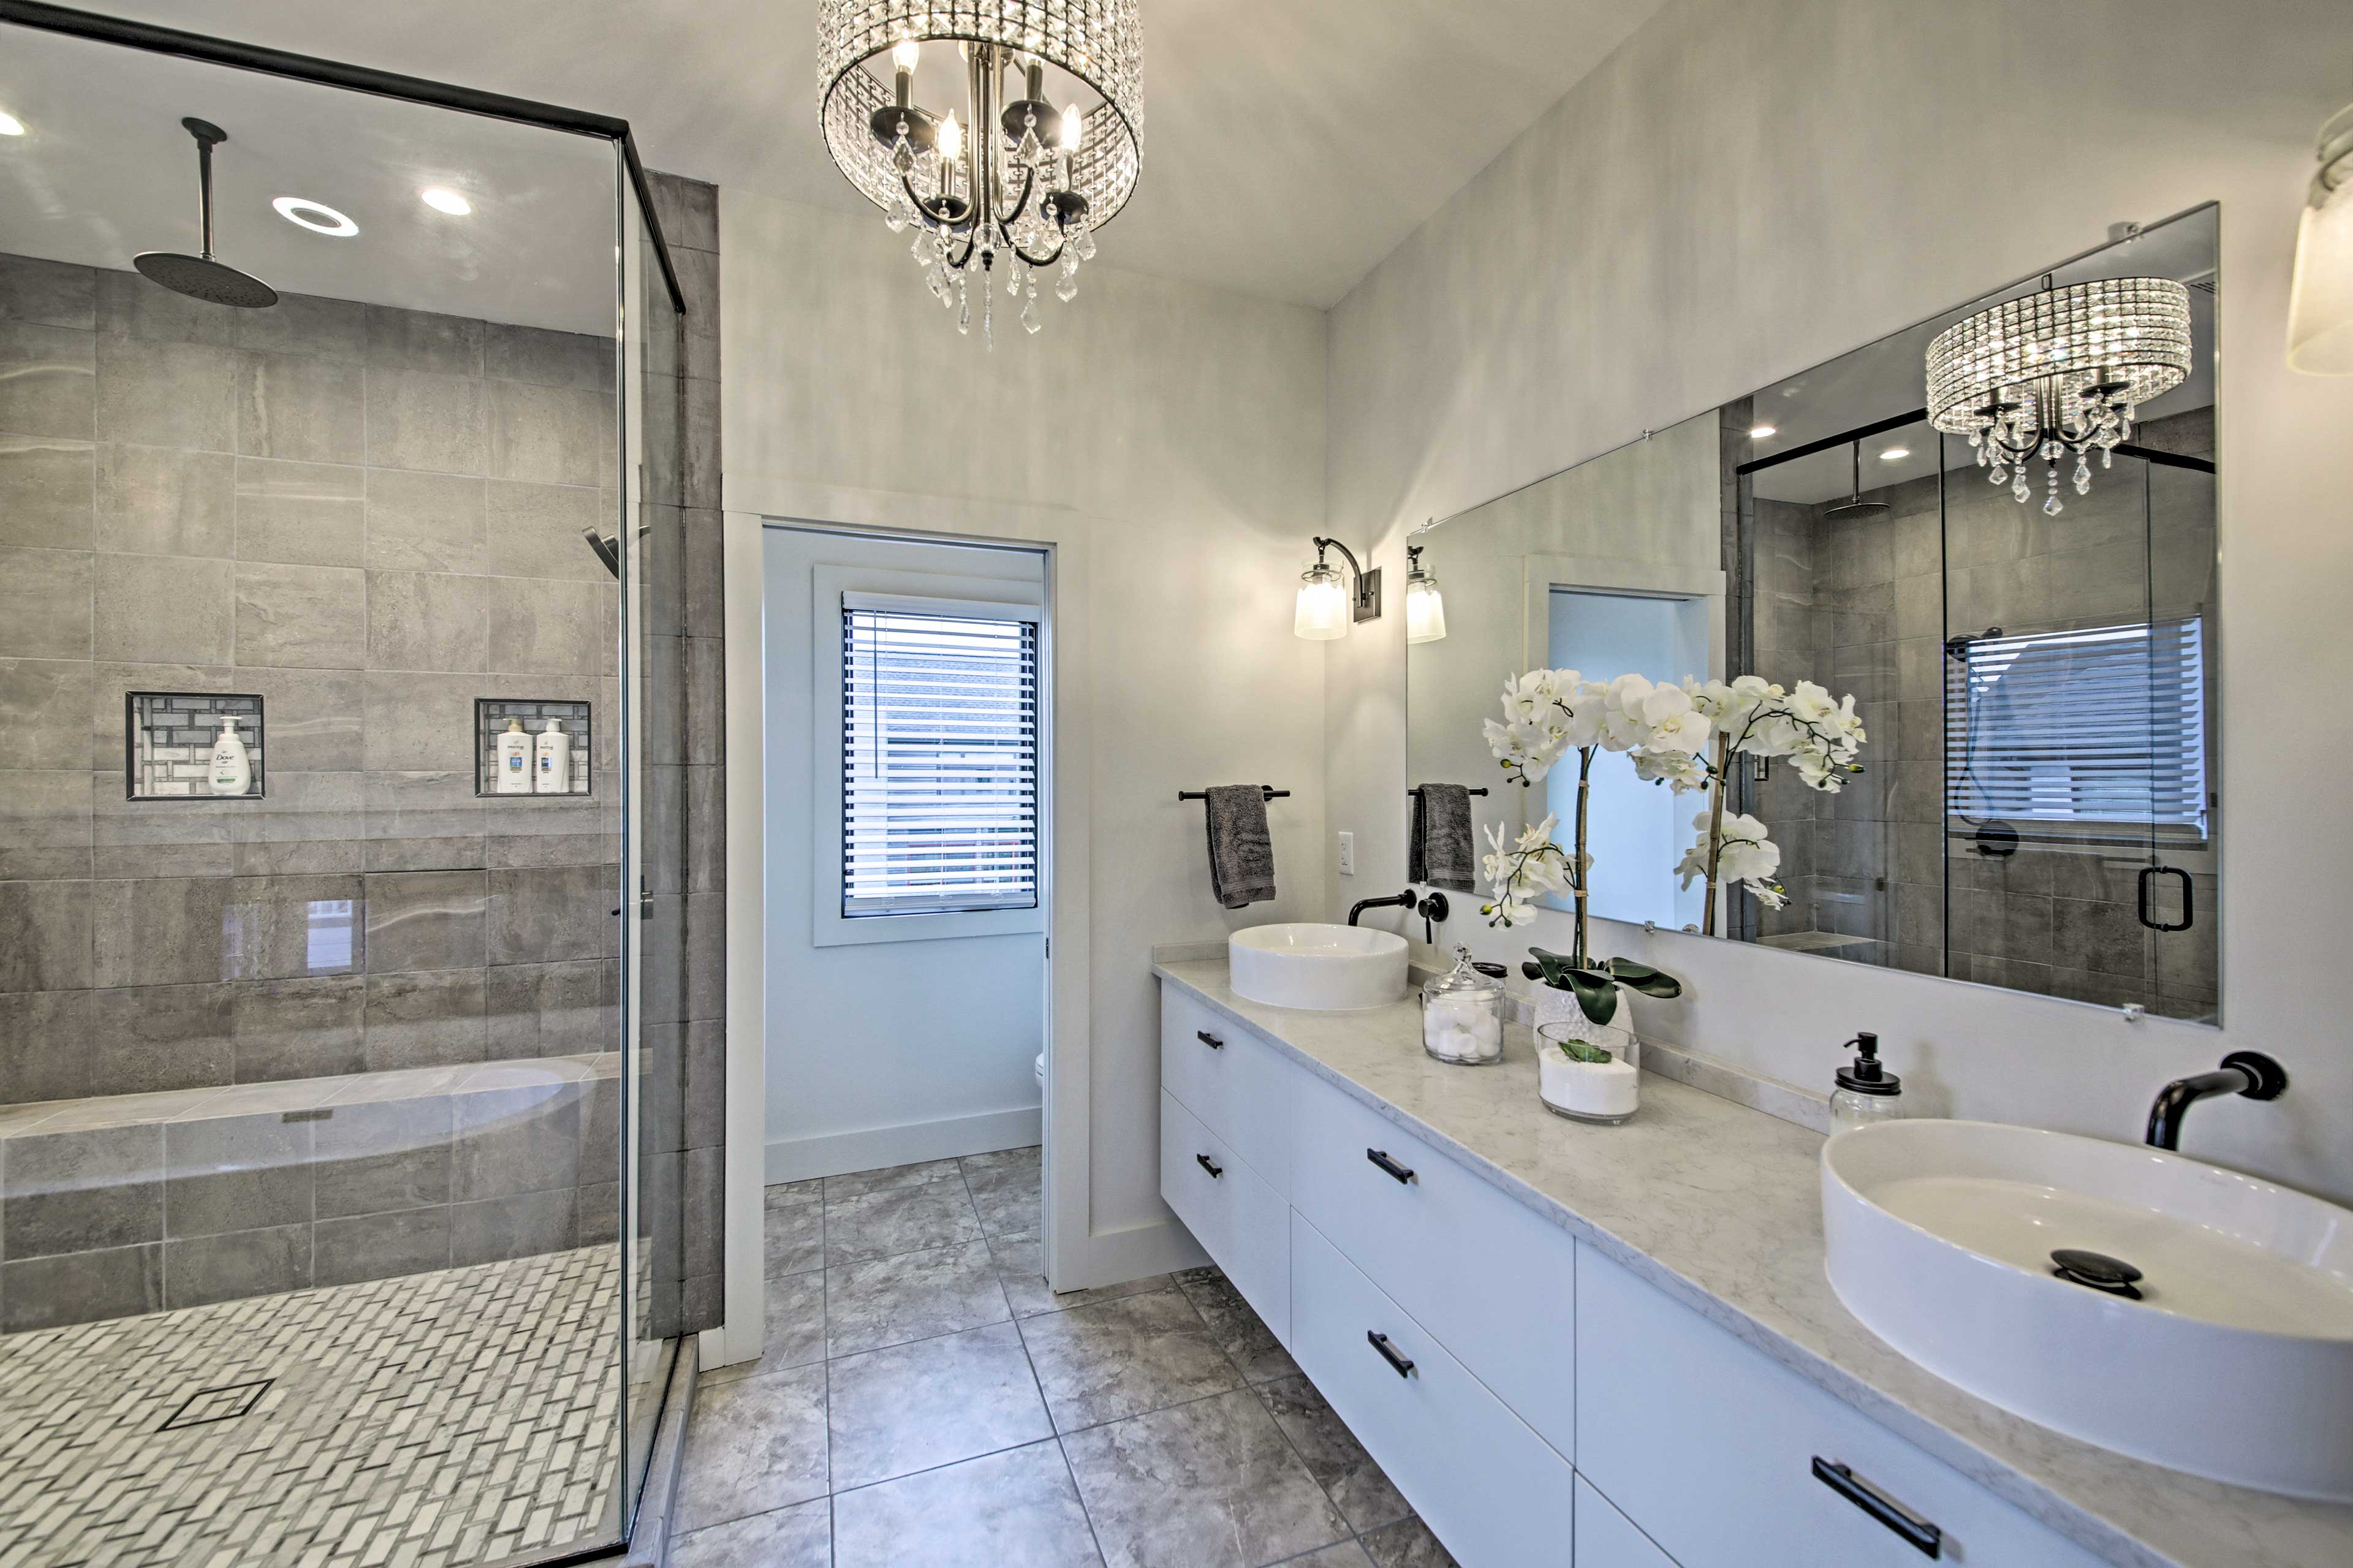 Enjoy your morning routine in this luxurious bathroom.